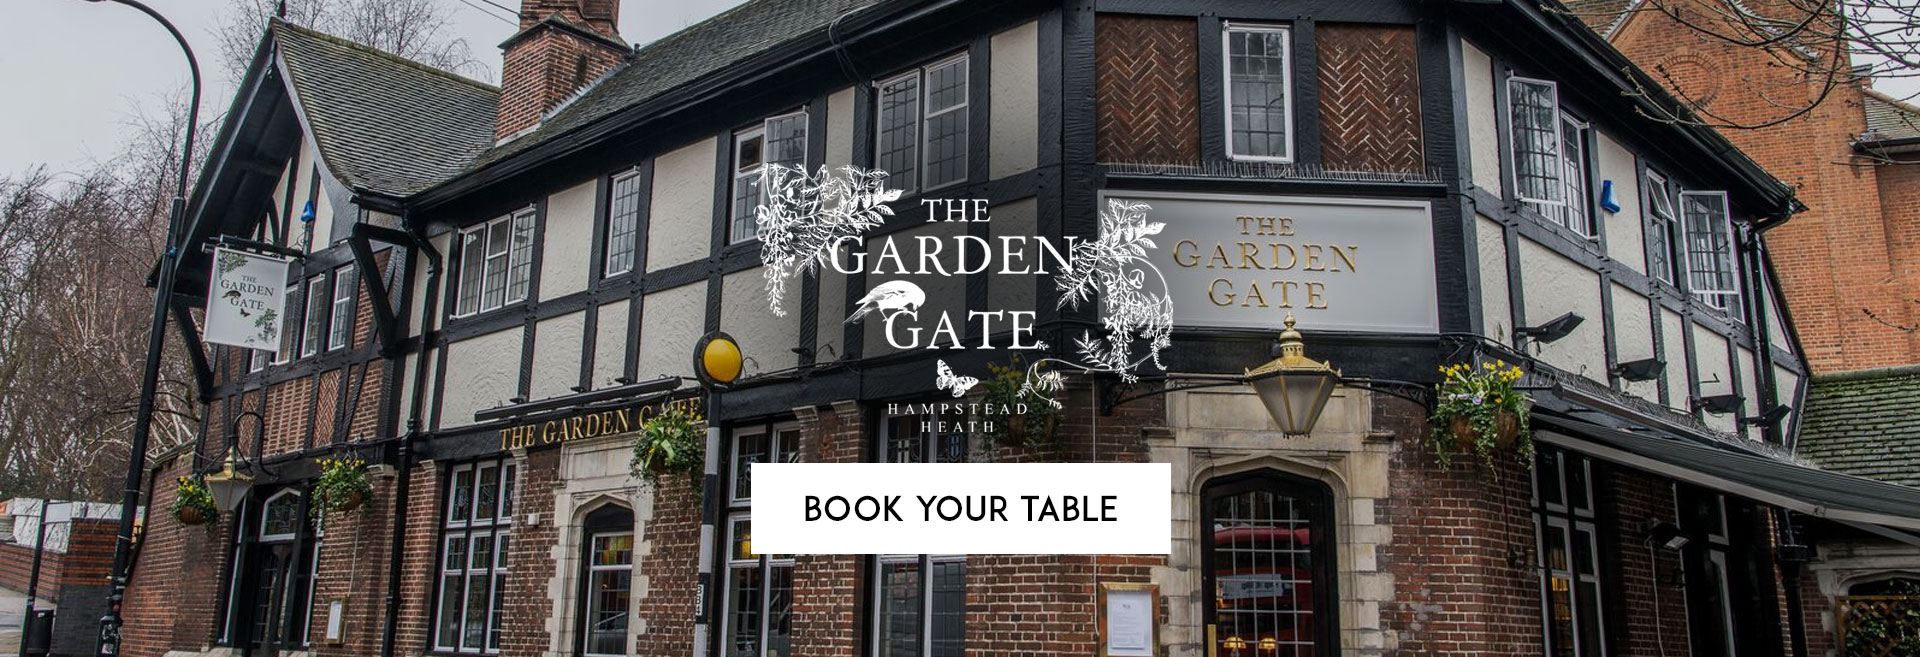 Book Your Table at The Garden Gate